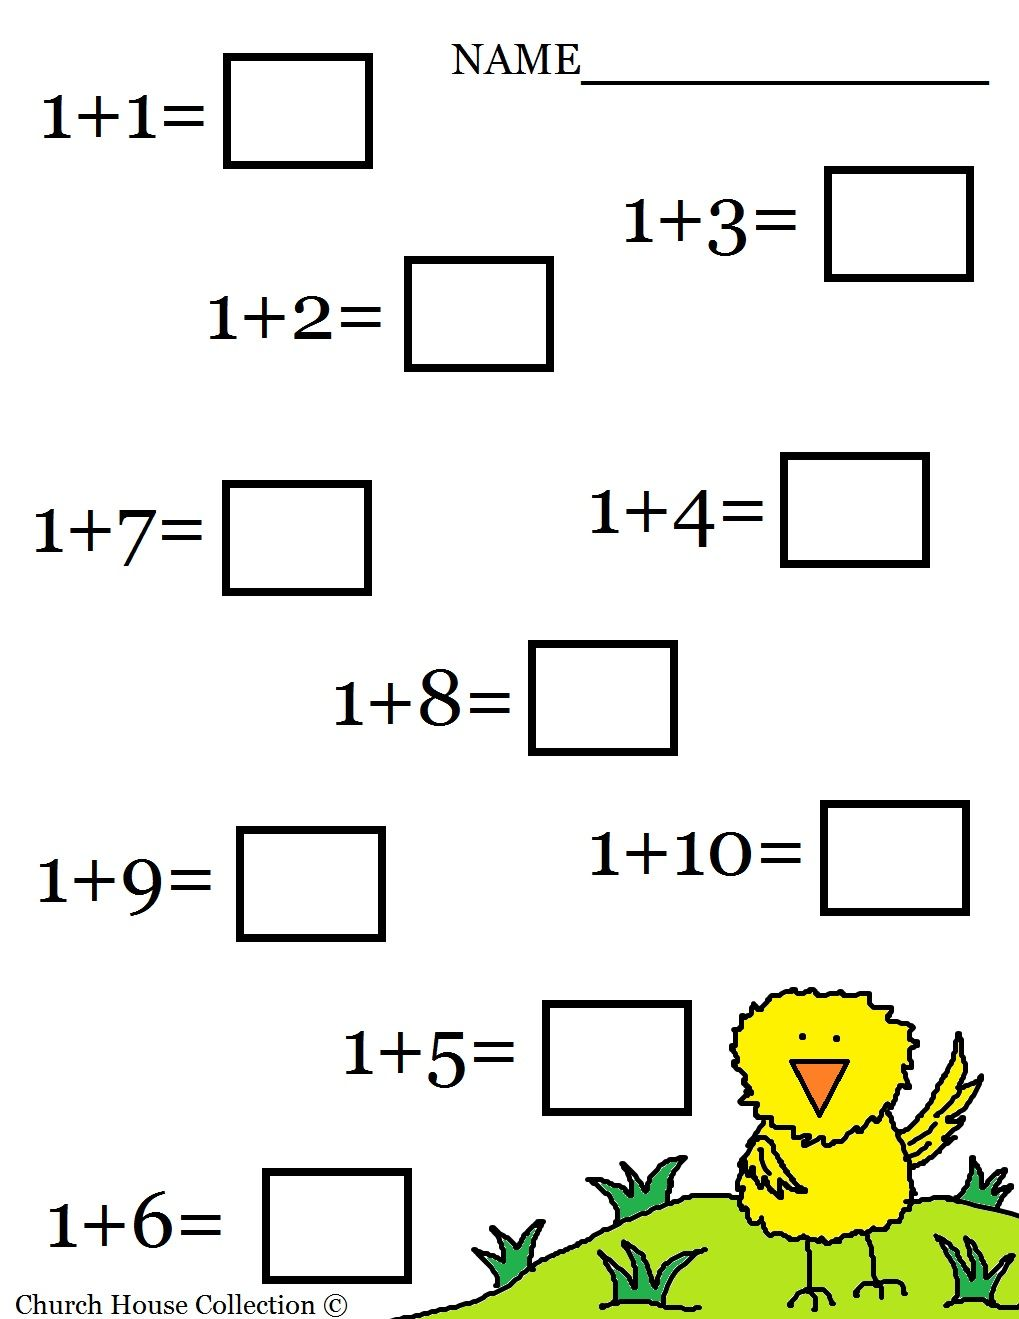 Aldiablosus  Winning  Images About Worksheets  Math On Pinterest  Math Sheets  With Fetching  Images About Worksheets  Math On Pinterest  Math Sheets Math Worksheets For Kindergarten And Simple Addition With Alluring Hindi Alphabet Worksheet Also Year  Worksheets Maths In Addition Science Worksheets Printables And Free Math Worksheets For High School As Well As Easy Decimal Worksheets Additionally Printable Independent Life Skills Worksheets From Pinterestcom With Aldiablosus  Fetching  Images About Worksheets  Math On Pinterest  Math Sheets  With Alluring  Images About Worksheets  Math On Pinterest  Math Sheets Math Worksheets For Kindergarten And Simple Addition And Winning Hindi Alphabet Worksheet Also Year  Worksheets Maths In Addition Science Worksheets Printables From Pinterestcom